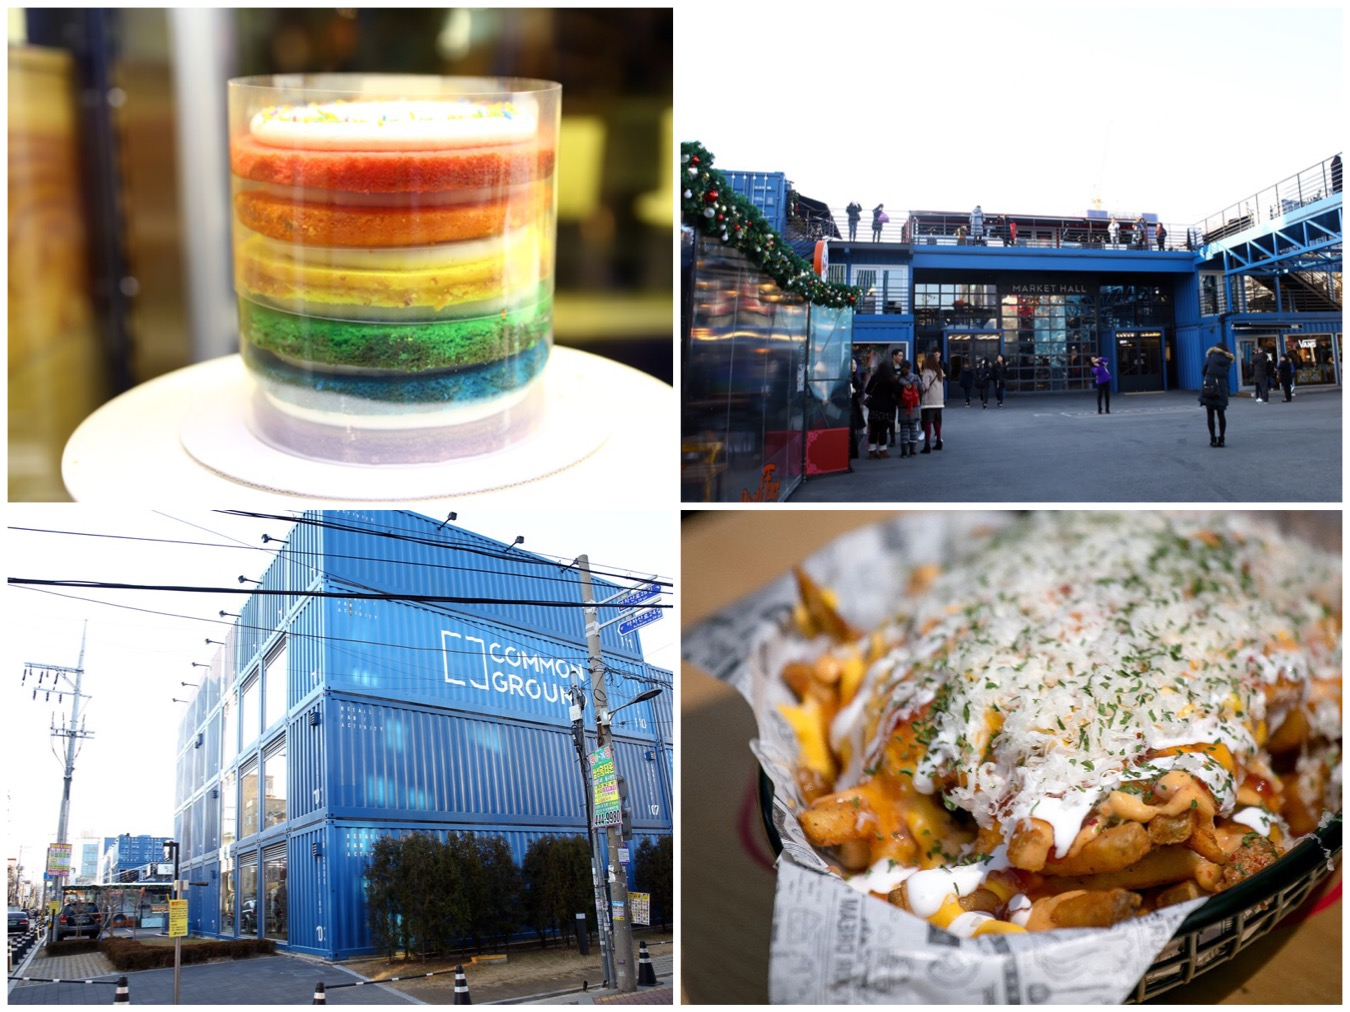 Common Ground Korea - Instagrammable Container Market With Food & Shopping For Youths In Seoul